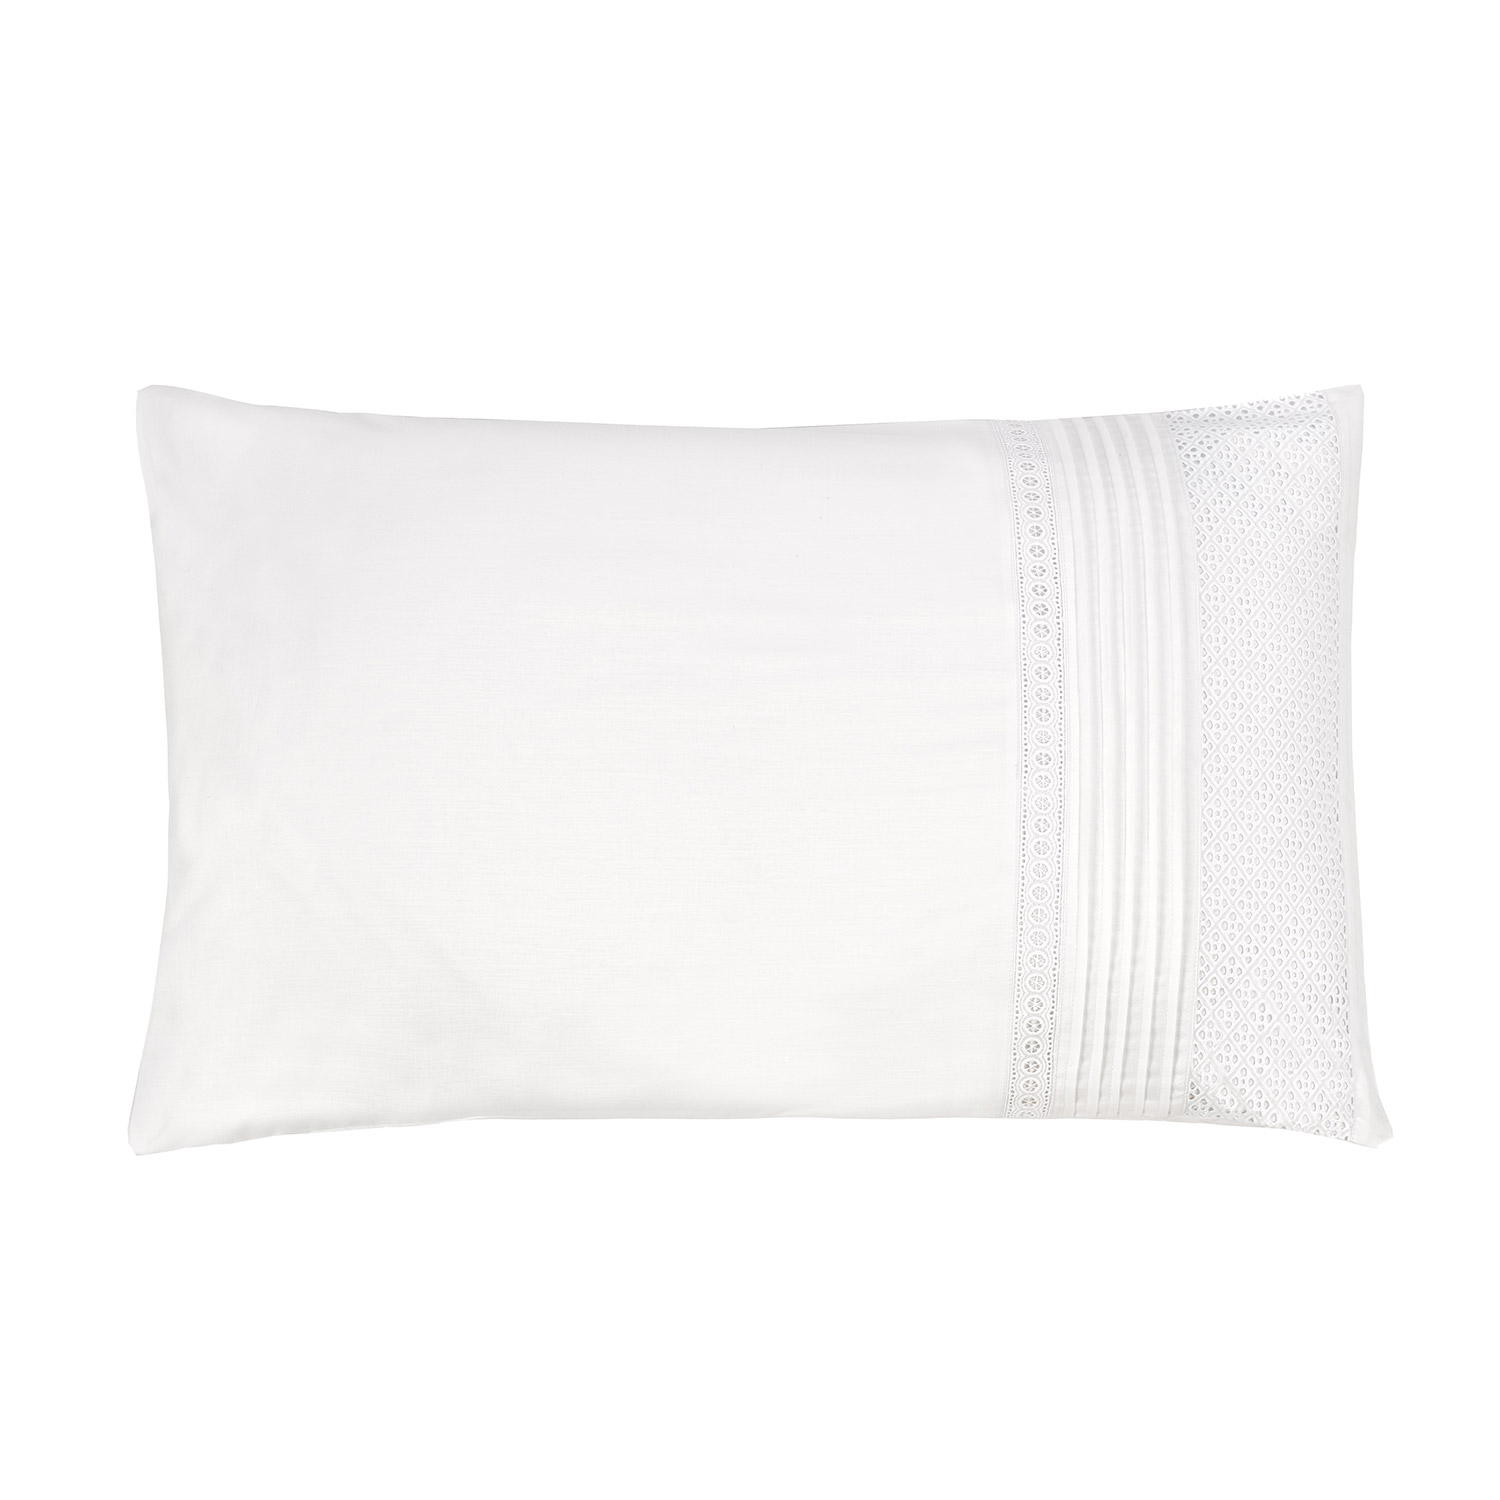 Cleo White Embroidered Luxury Housewife Pillow Cases (Pair)